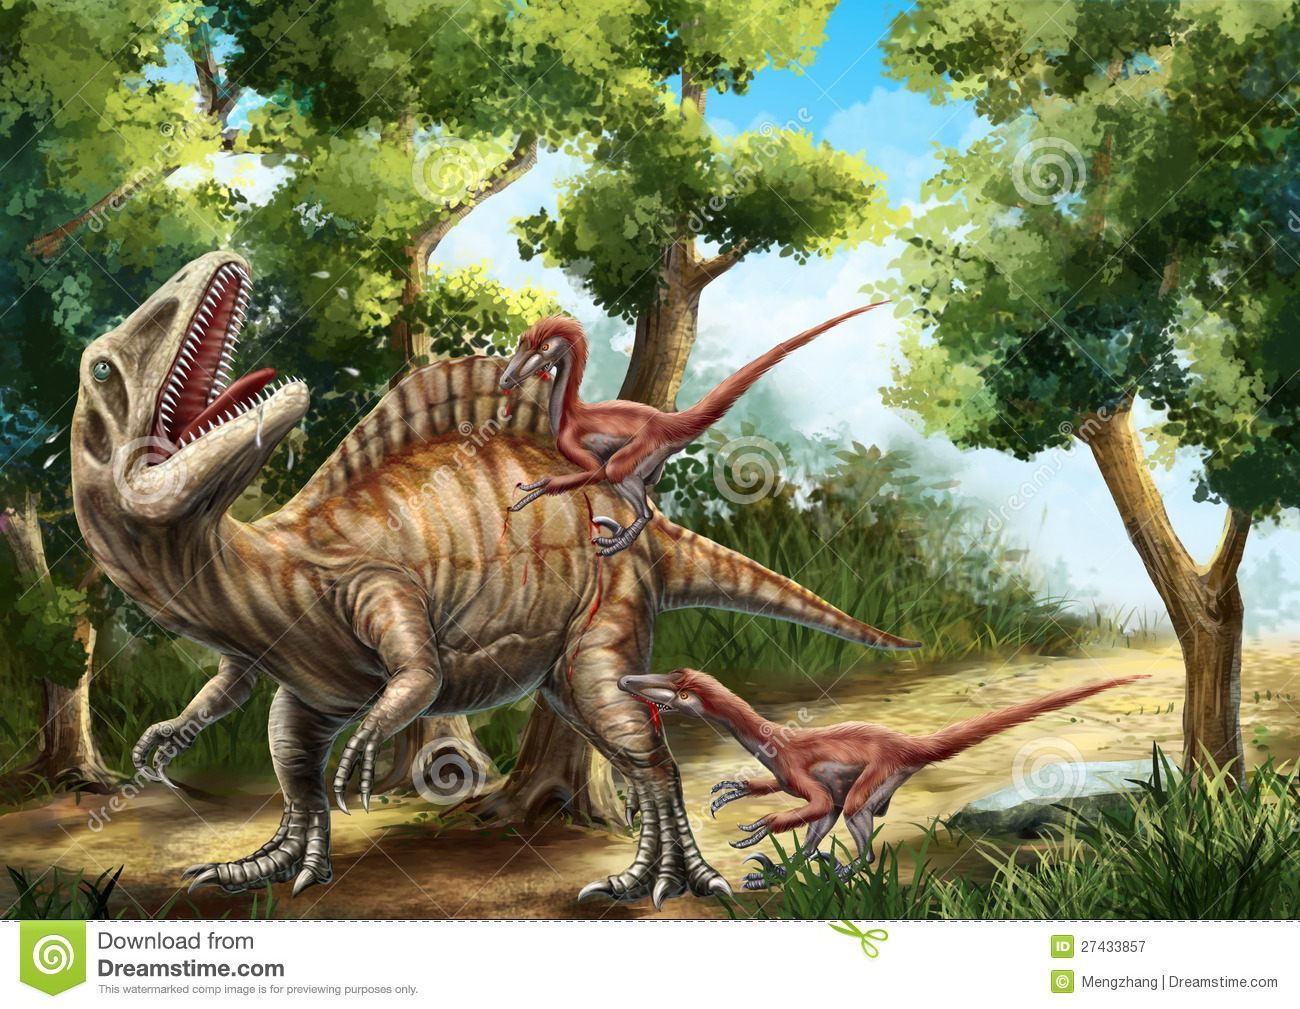 Two deinonychuses were attacking an a crocanthosaurus in the wood。.